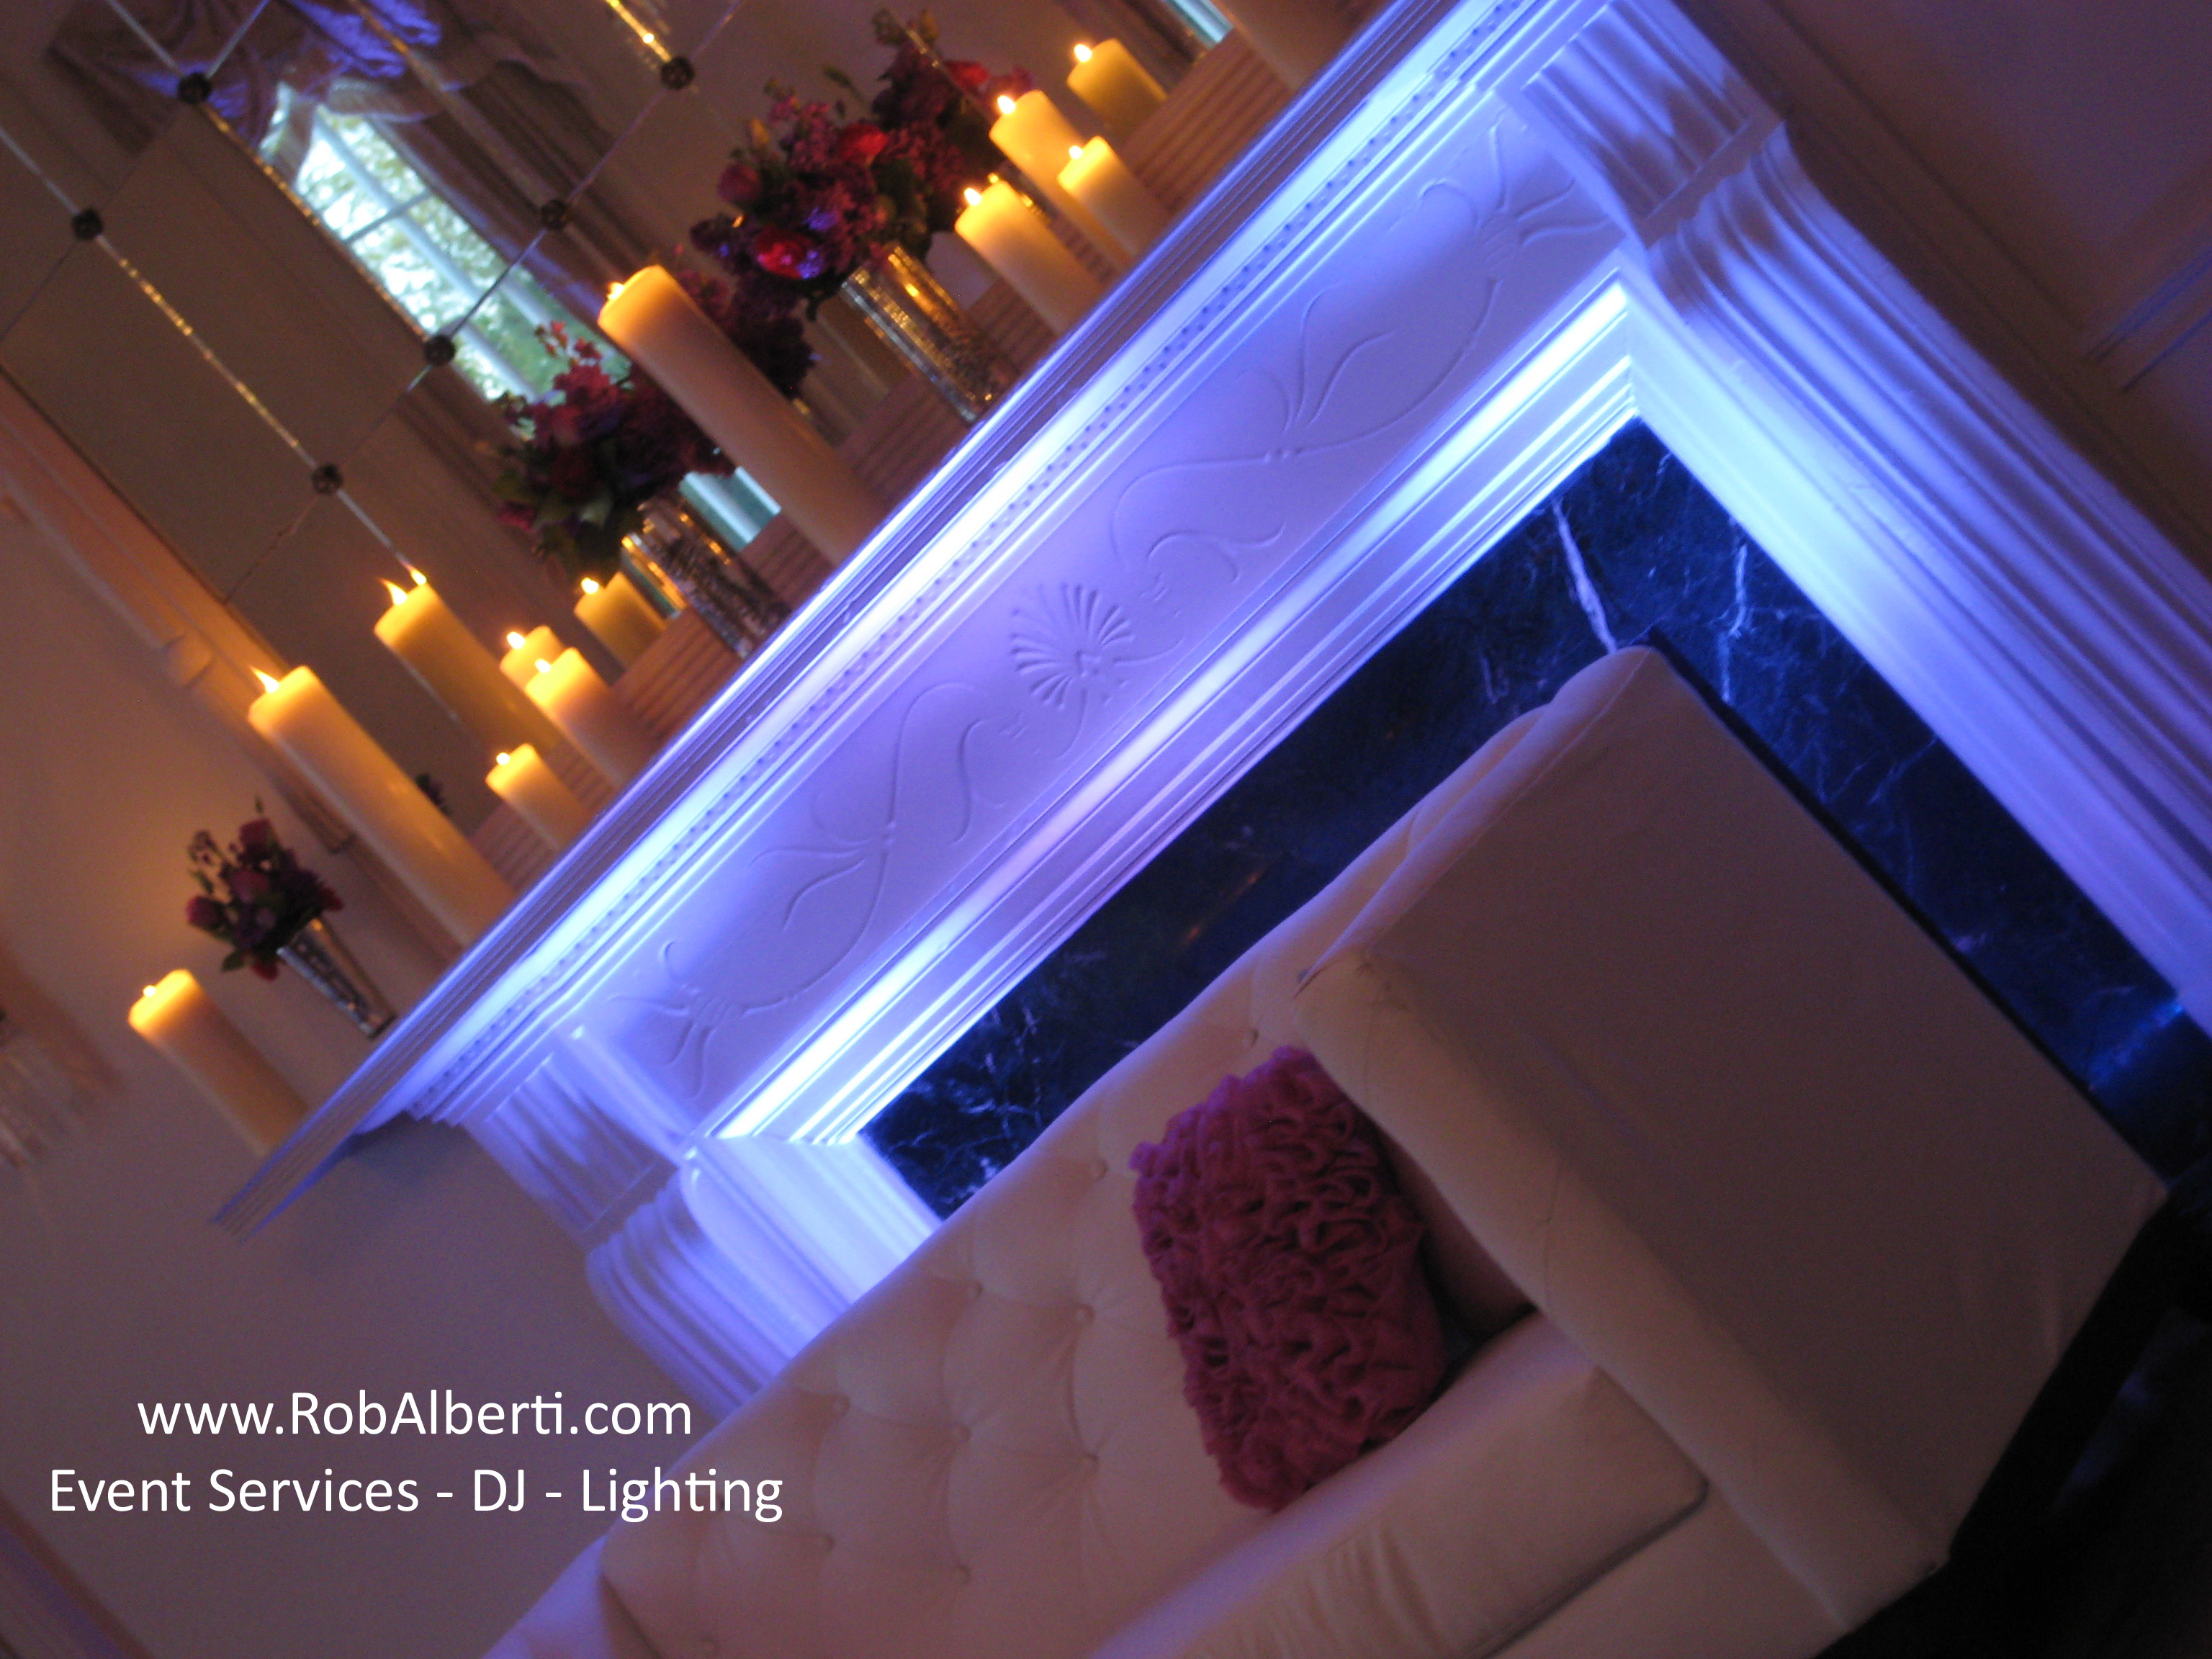 up lighting ideas. Beautiful Lighting Wedding Reception Event Lighting Up Ideas Inside Up Lighting Ideas 5